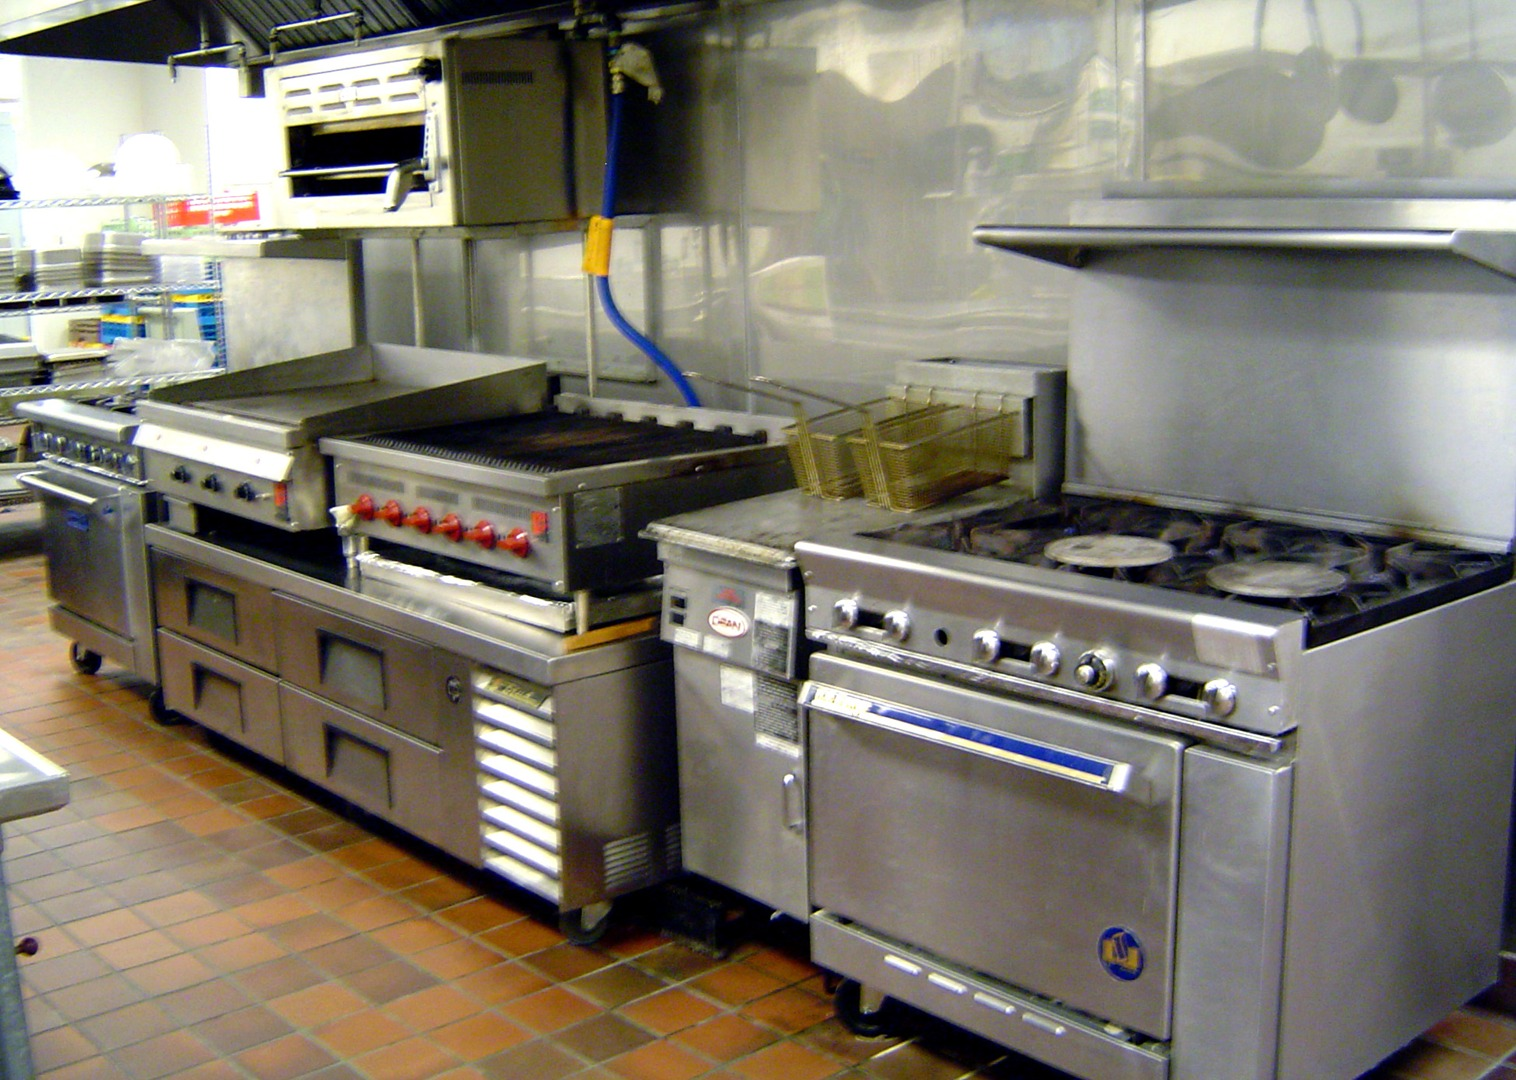 Commercial Small Commercial Kitchen Layout